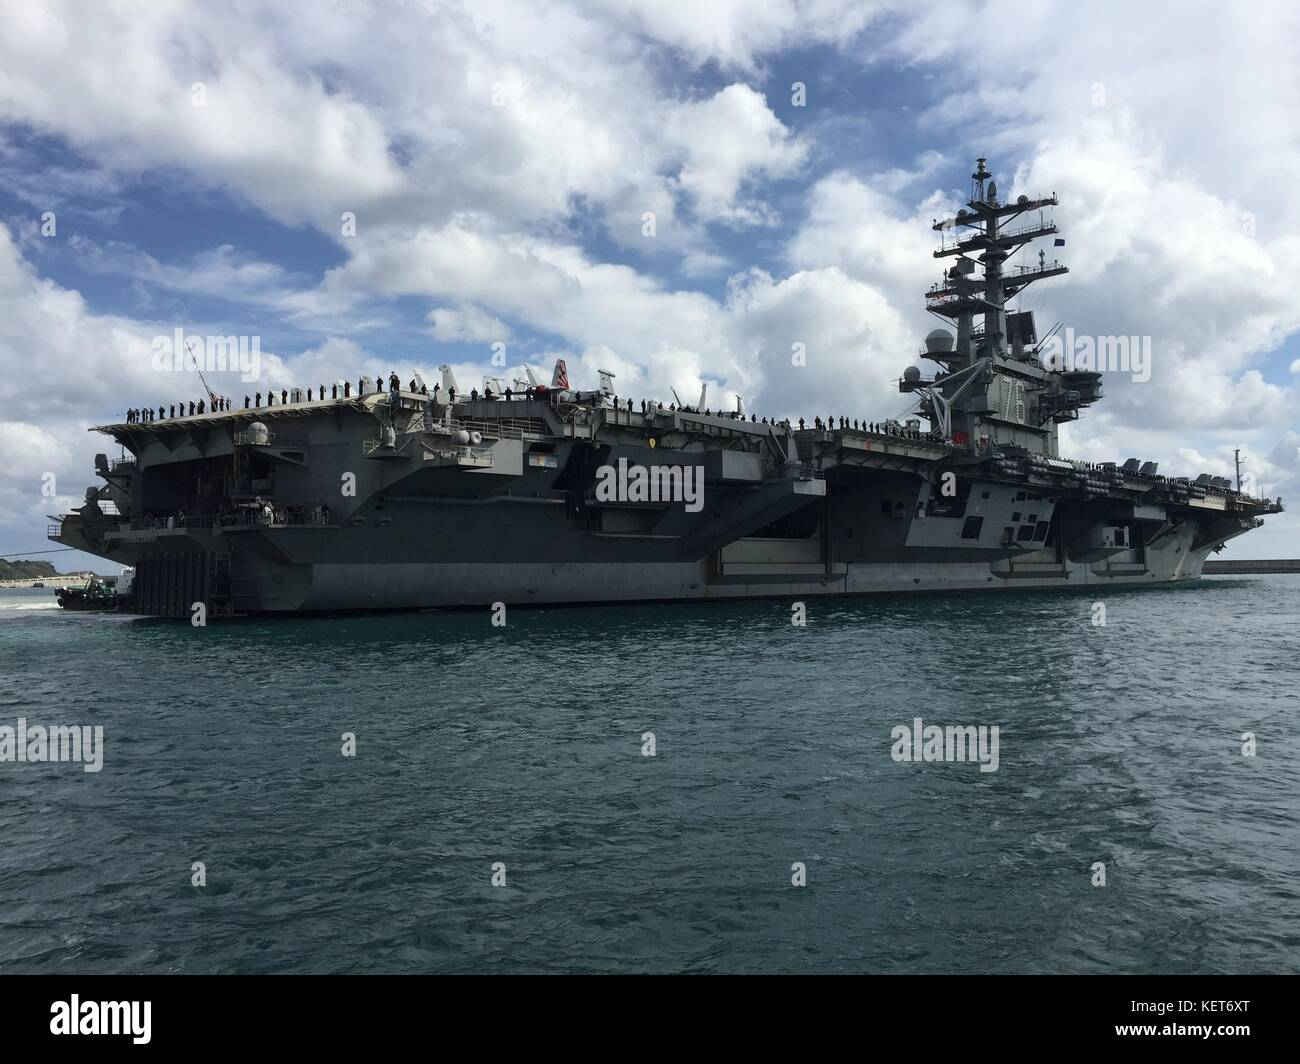 The USS Ronald Reagan (CVN 76) Carrier Strike Group pulled into port at Busan, Republic of Korea Stock Photo